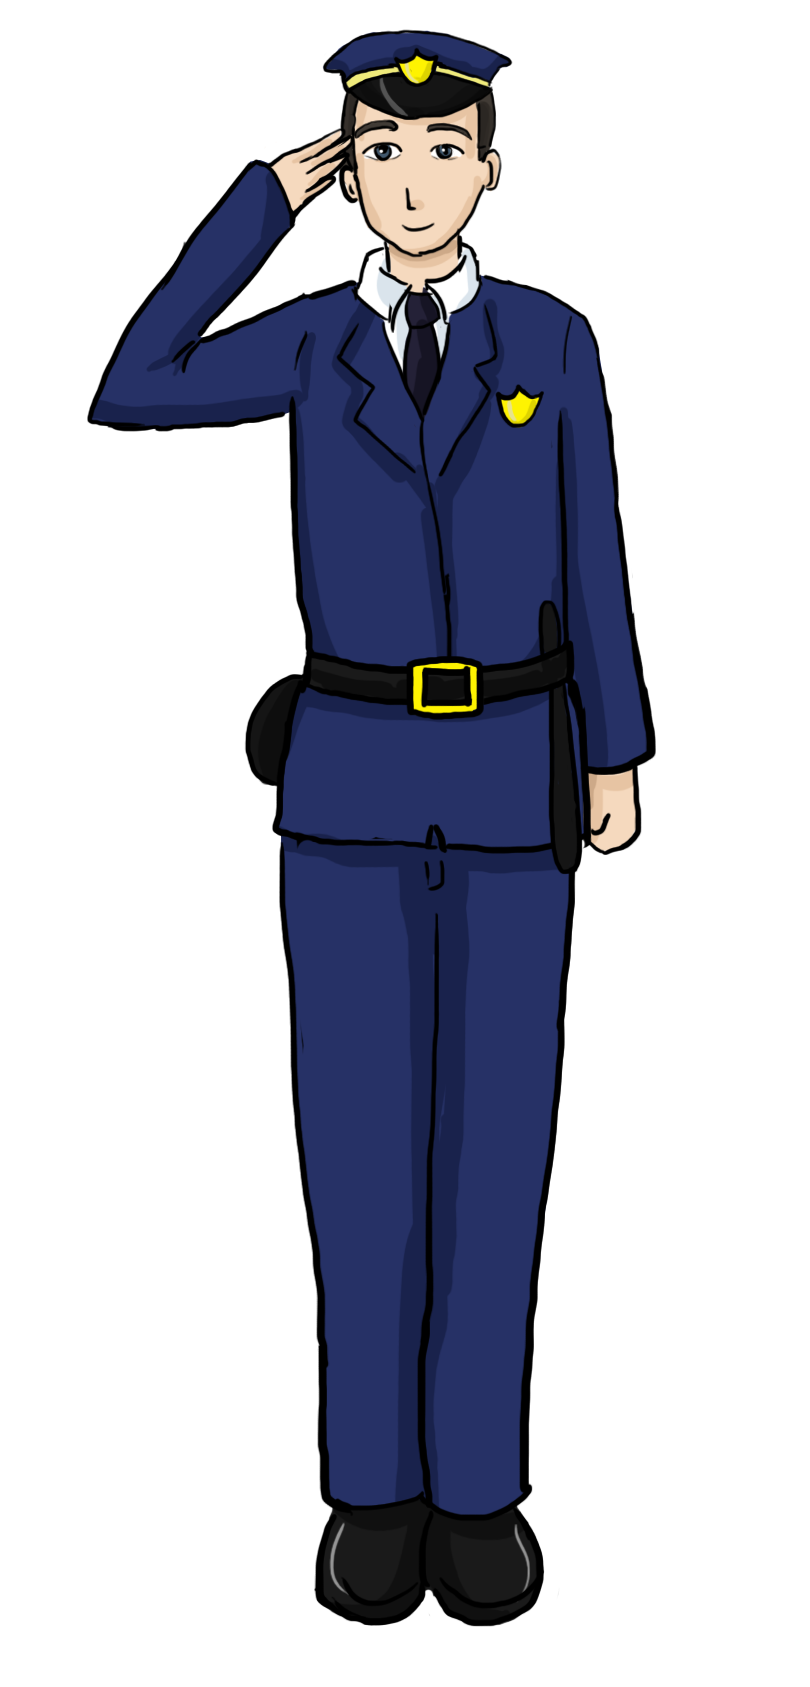 Clip Art Police Officer Uniform Clipart - Clipart Suggest